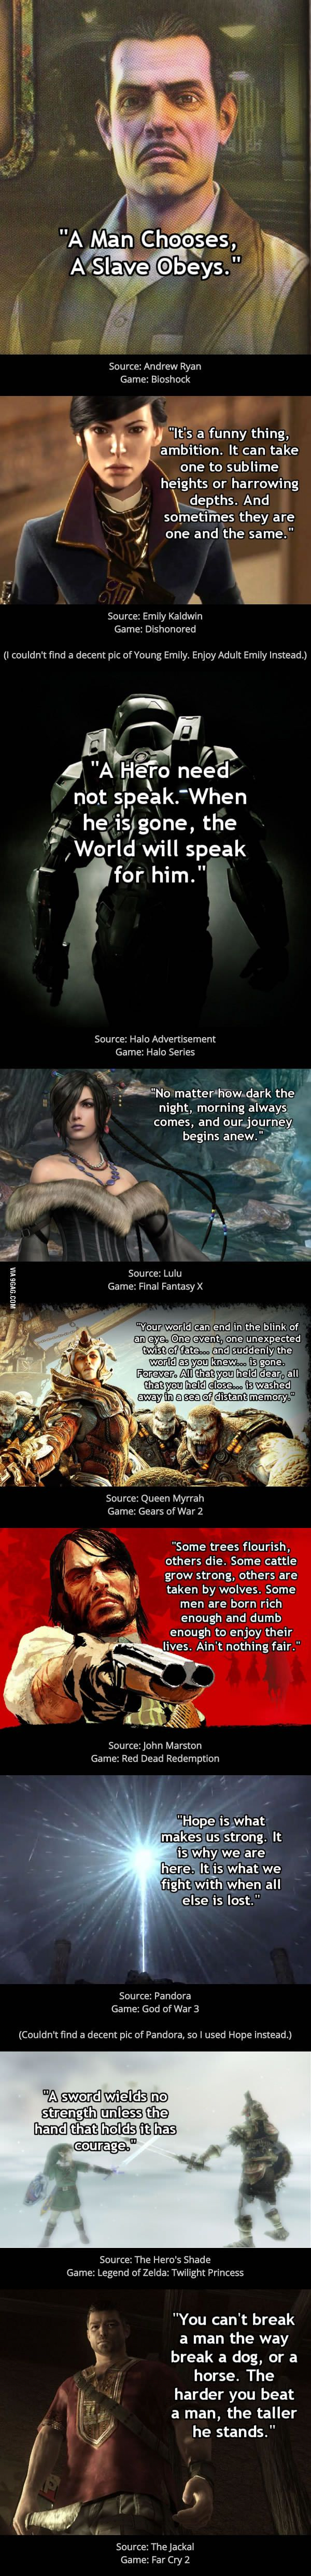 Collection Of Cool Video Game Quotes Things I Love Video Game